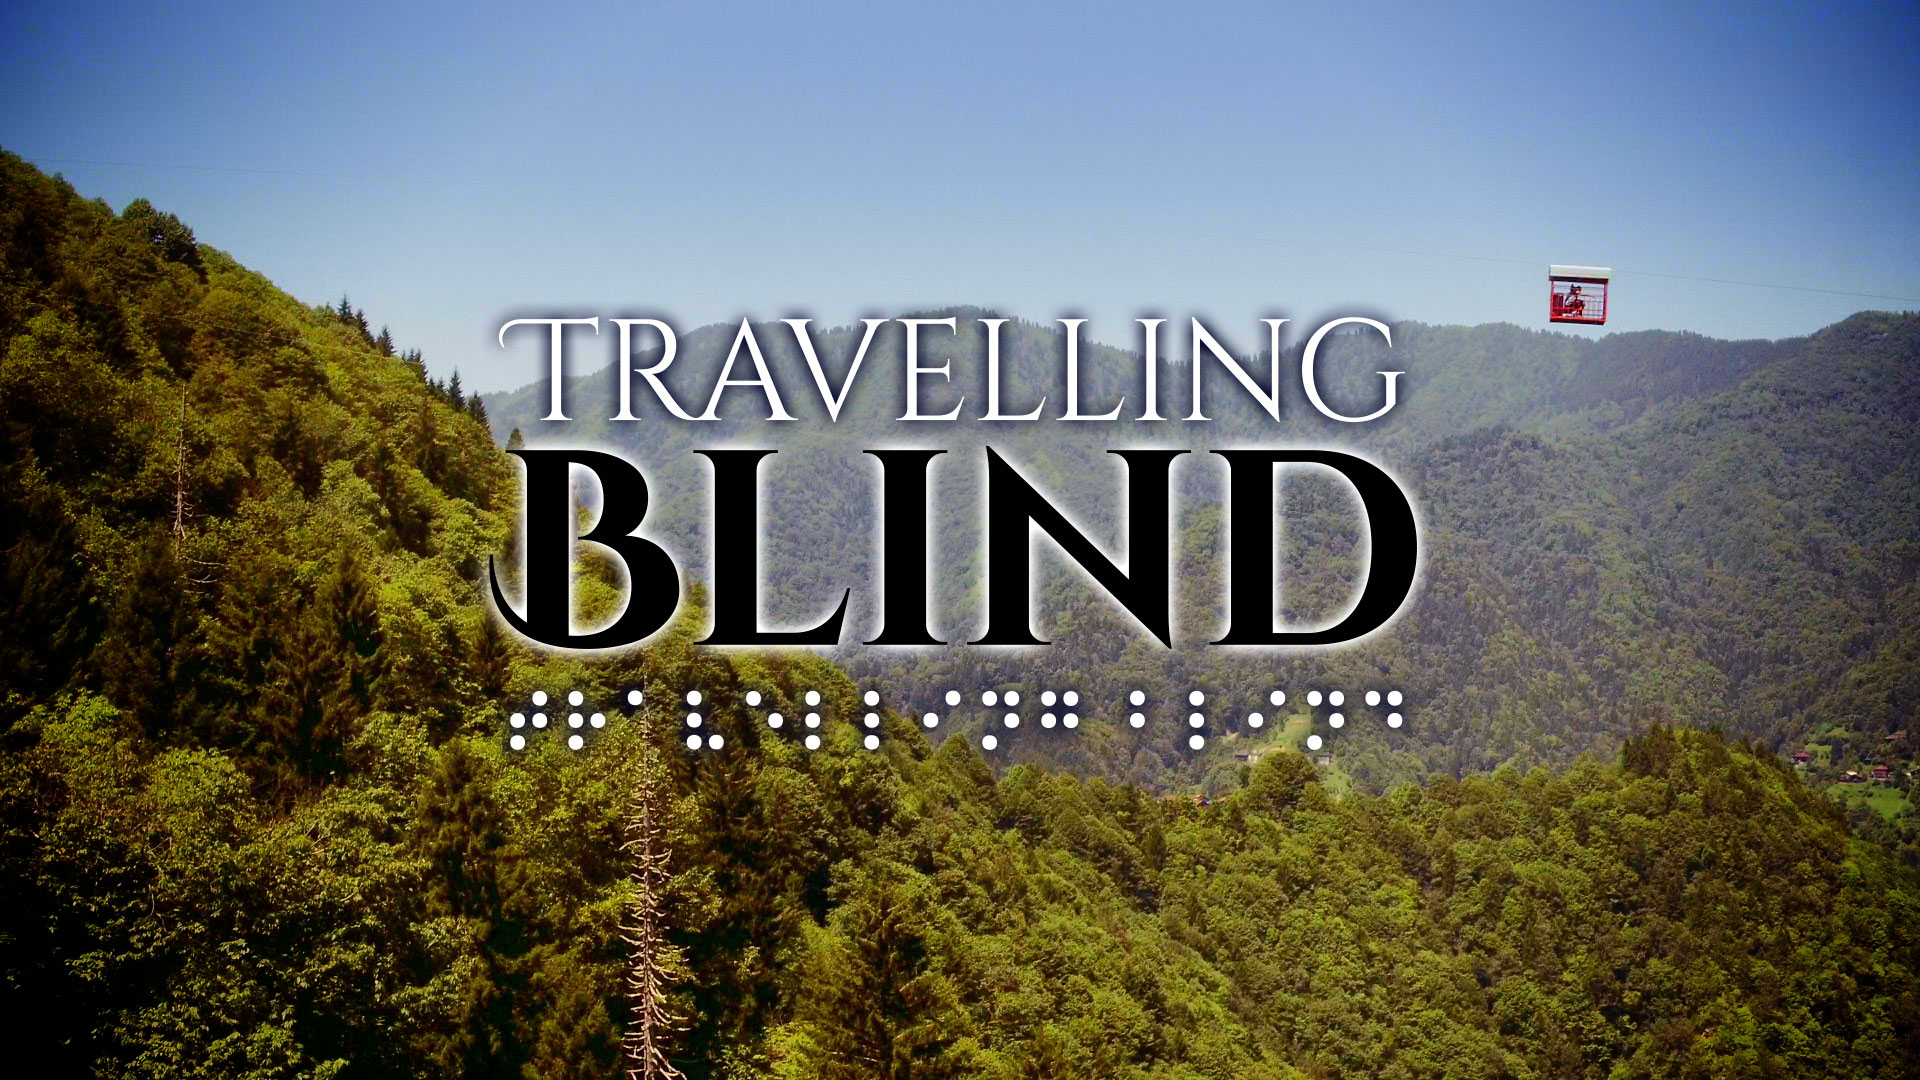 Travelling Blind Title Brand © Holey and Moley Ltd